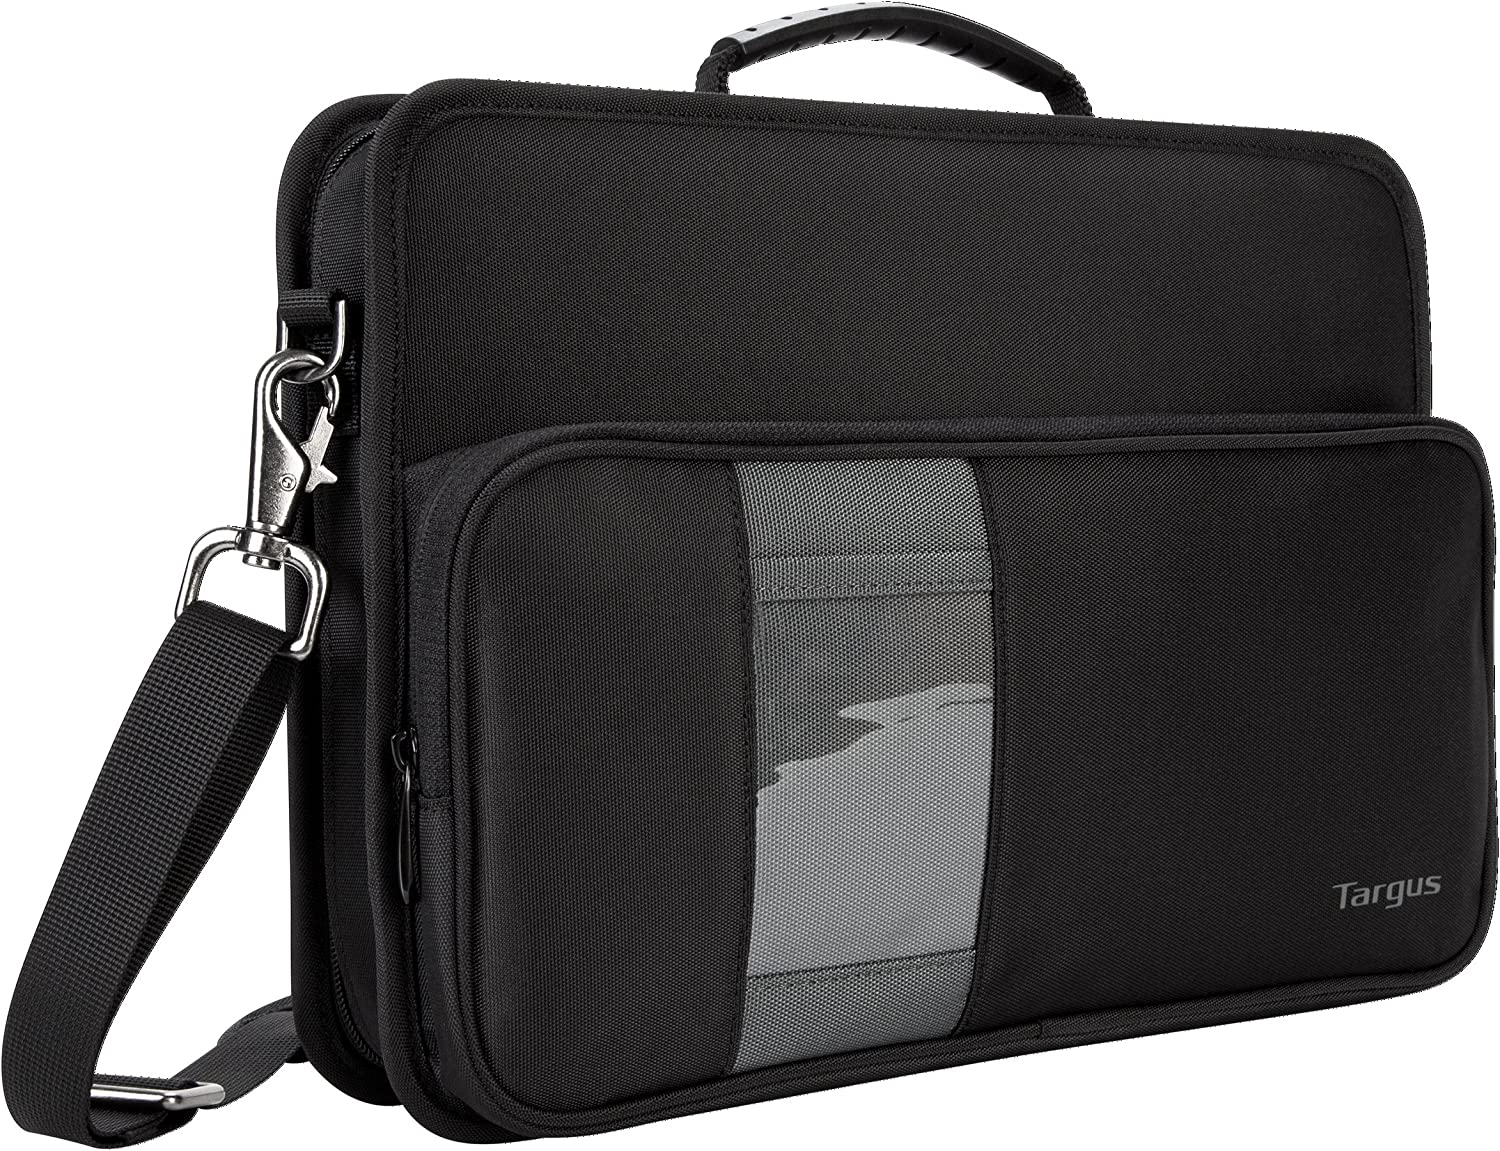 Targus Work-In Case Business Laptop Shoulder Bag for Macbook/Notebook with Protective Sleeve with Strap for 11.6-Inch Laptop, Black (TKC001)